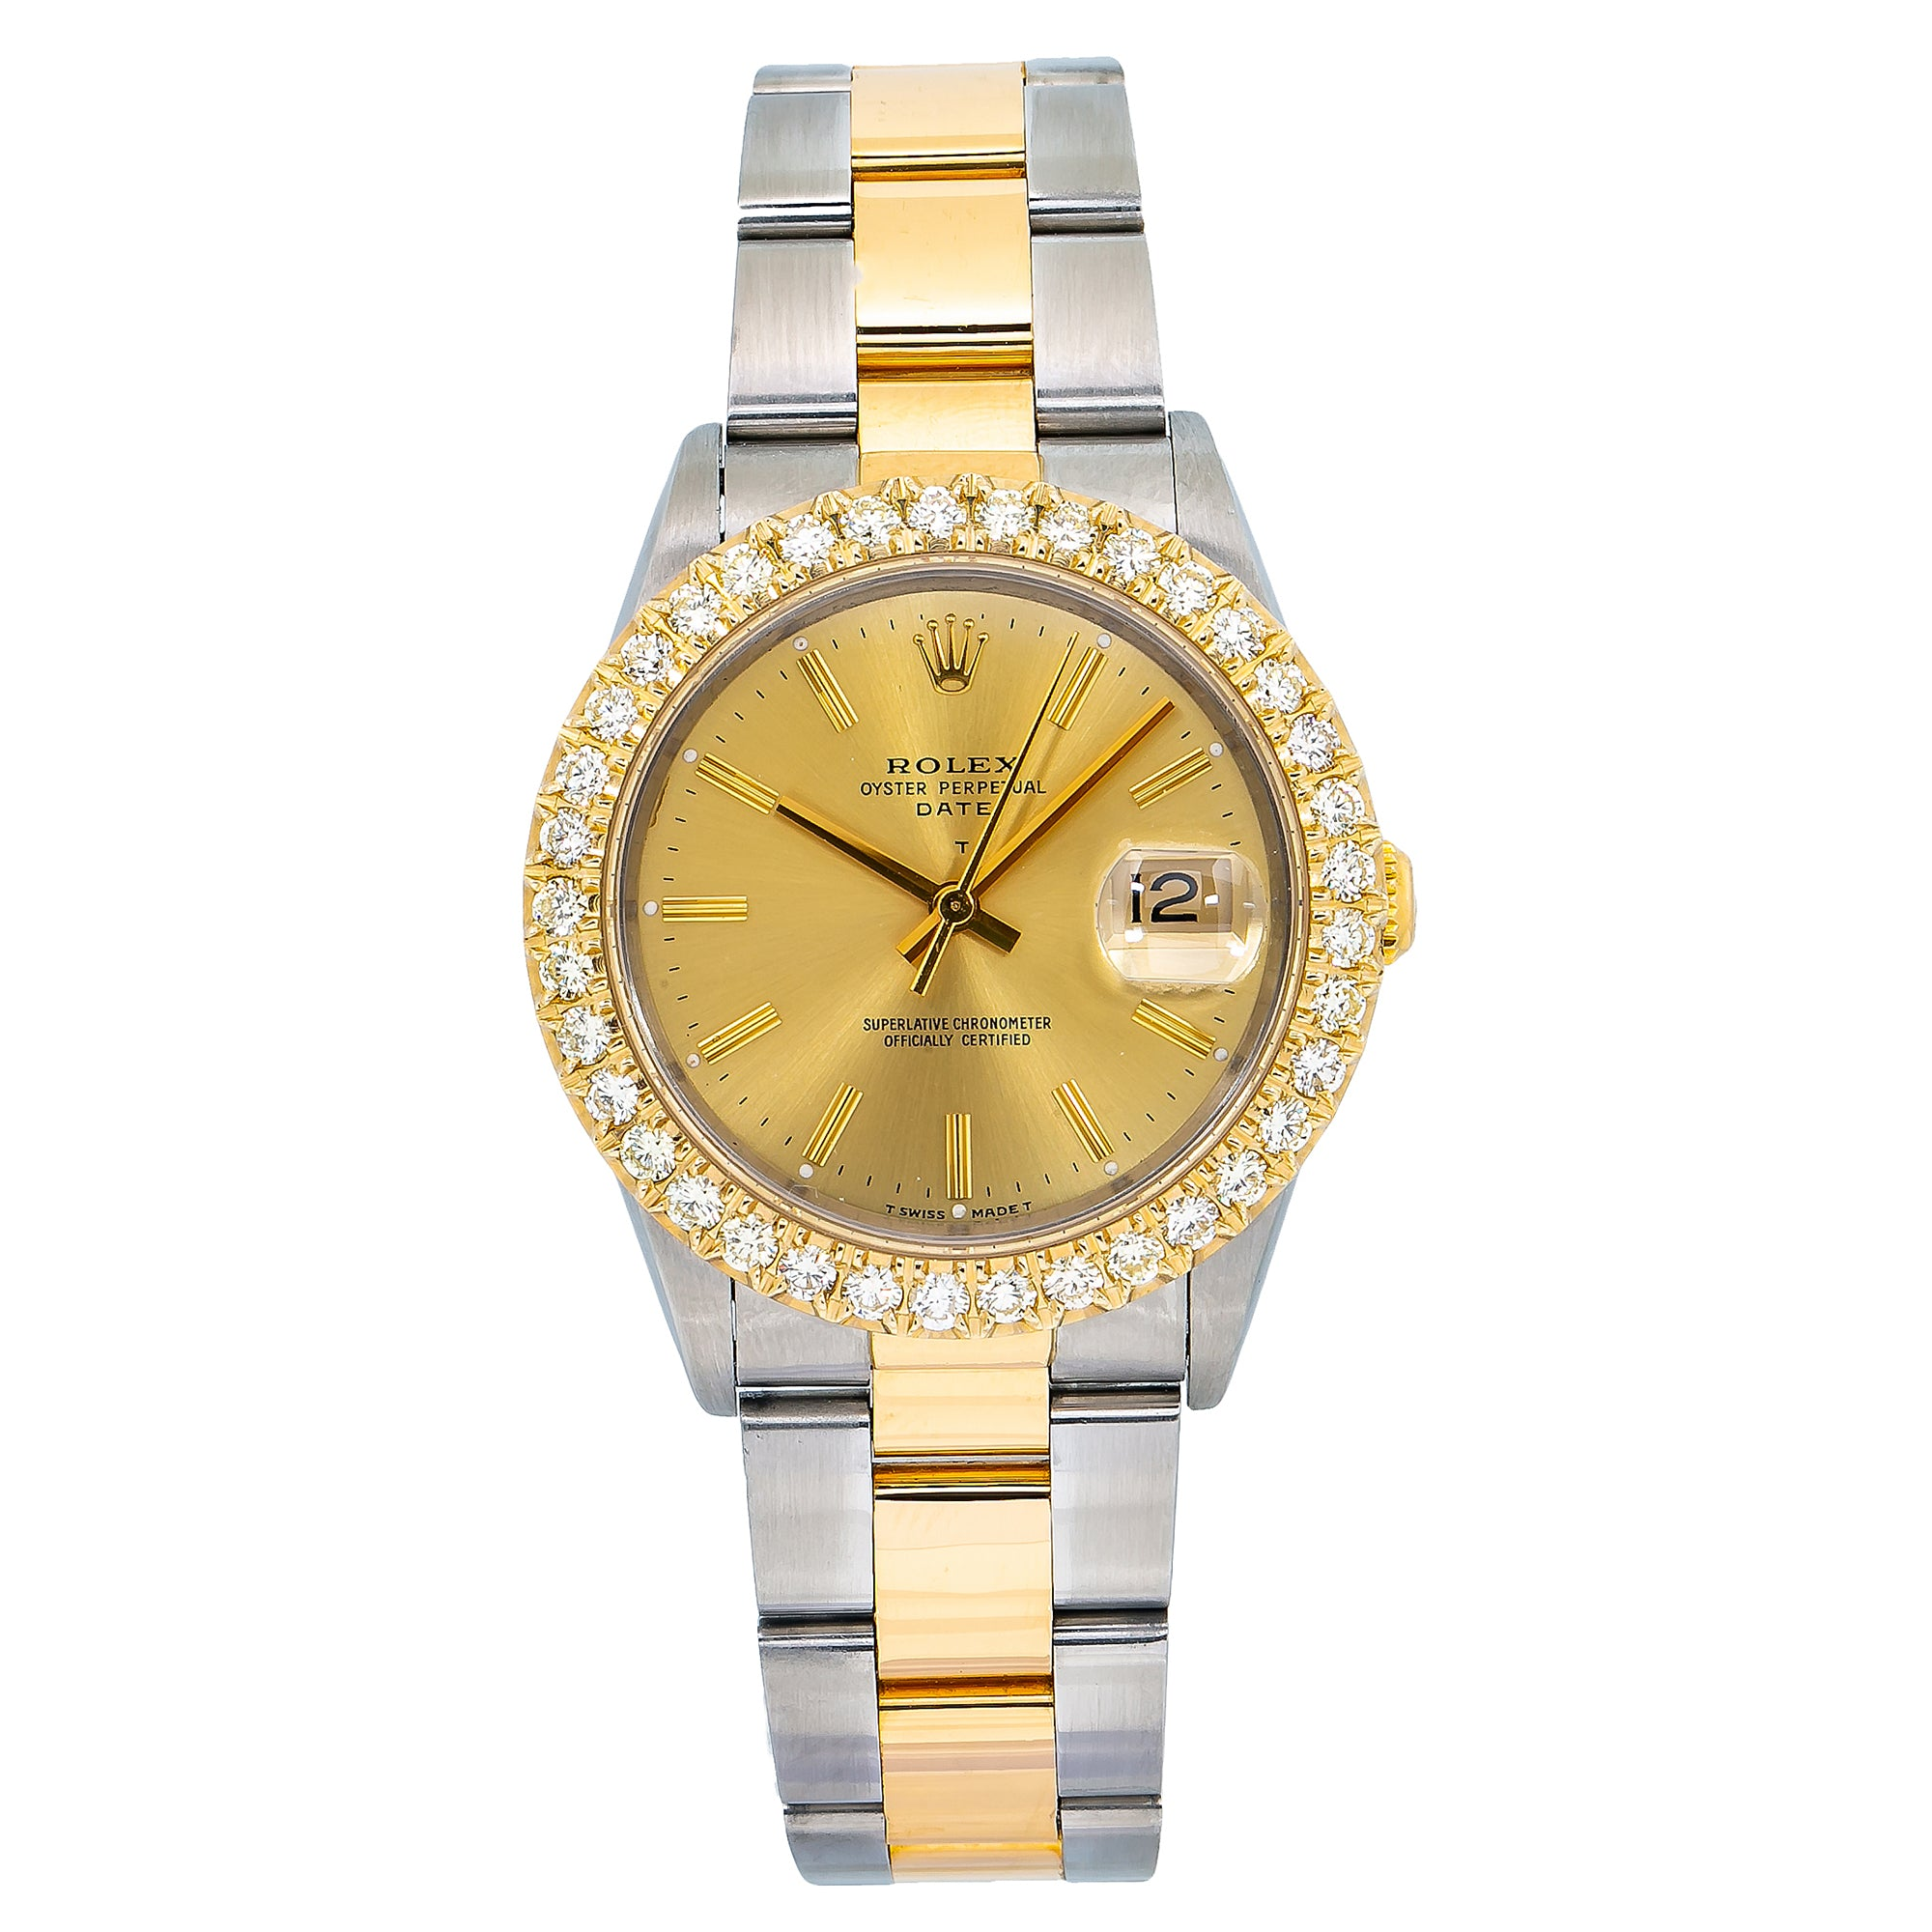 Rolex Oyster Perpetual Date 15233 34MM Champagne Dial With Two Tone Oyster Bracelet